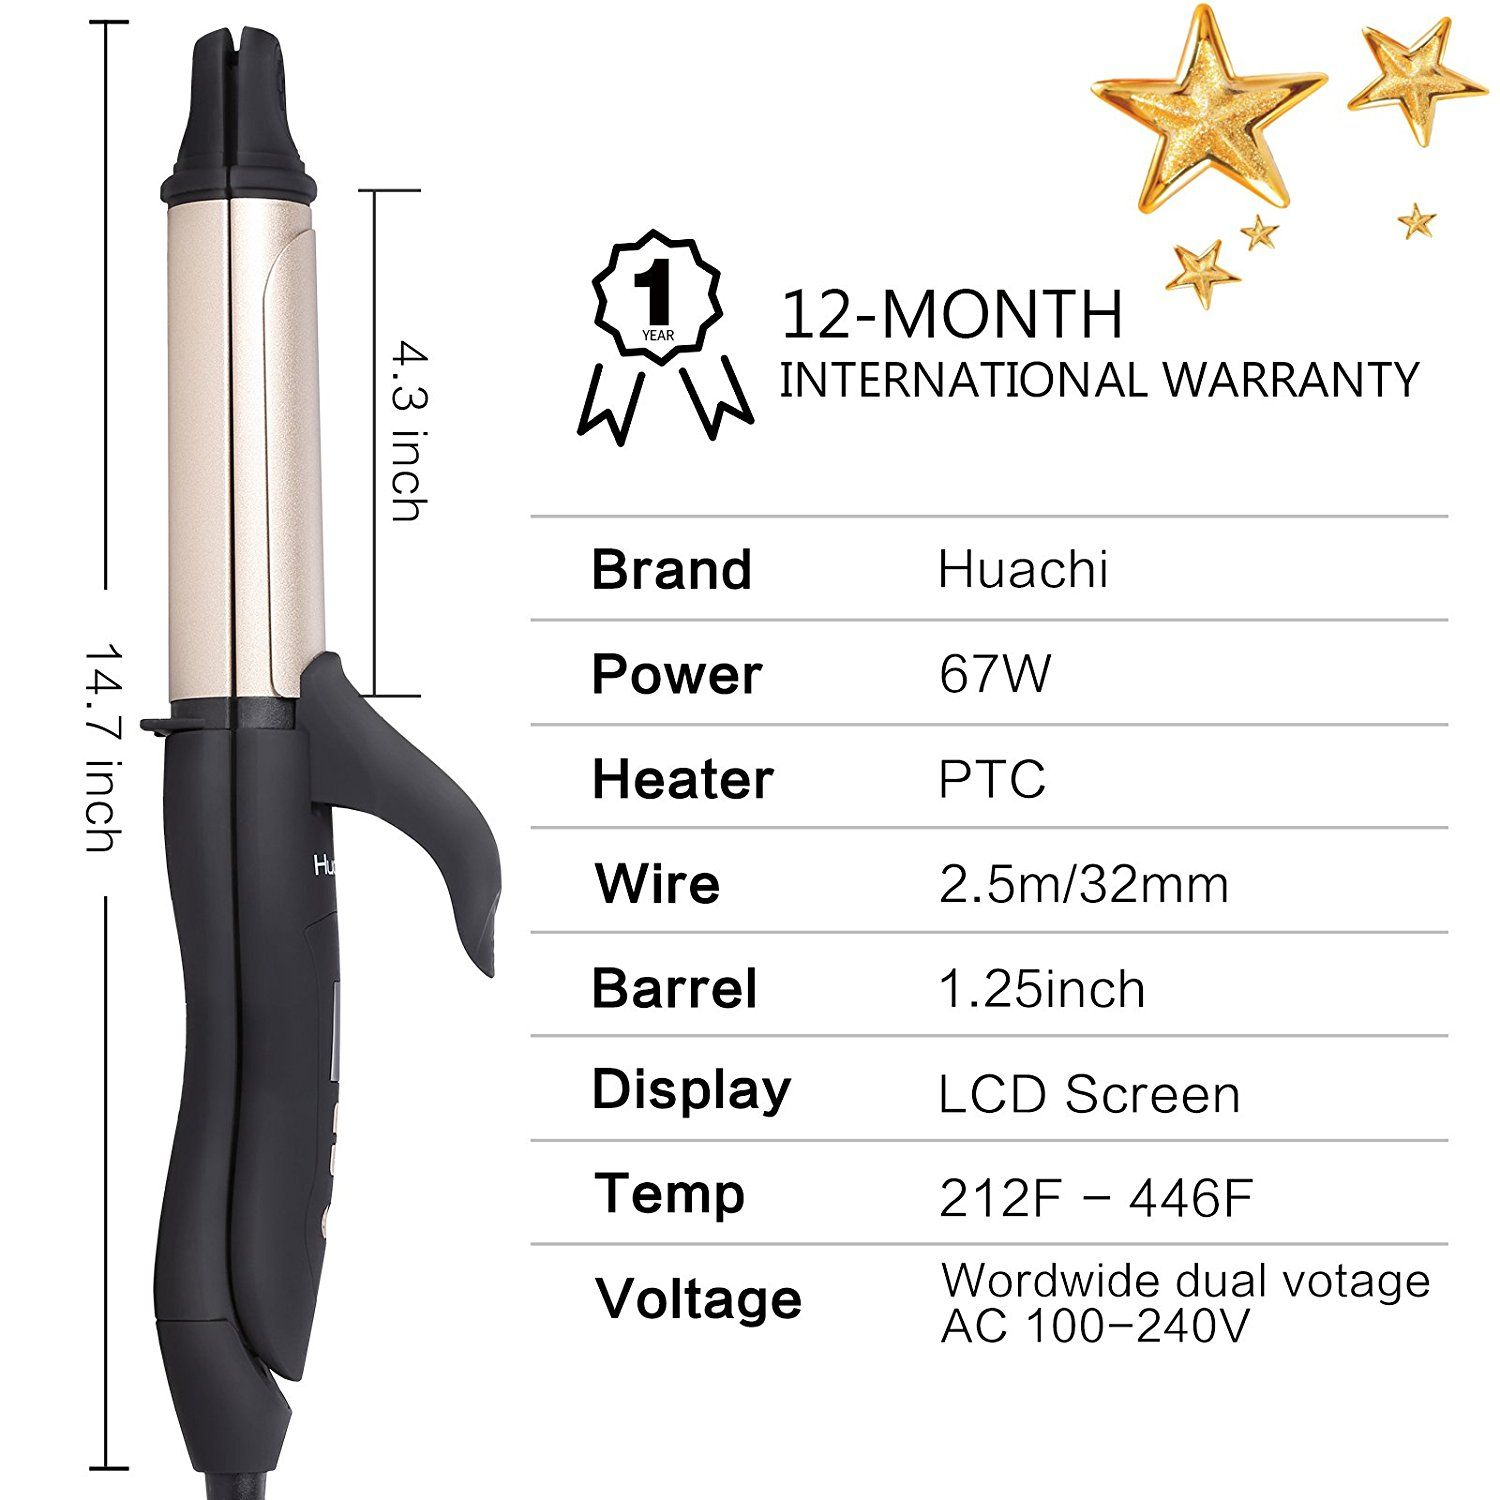 Huachi 2 In 1 Curling Iron Flat Iron 1 1 4 Inch Ceramic Hair Straightener Curling Wand 32mm Auto Shut Off Dual Voltage Gold S002 Ceramic Hair Straightener Hair Care Tips Hair